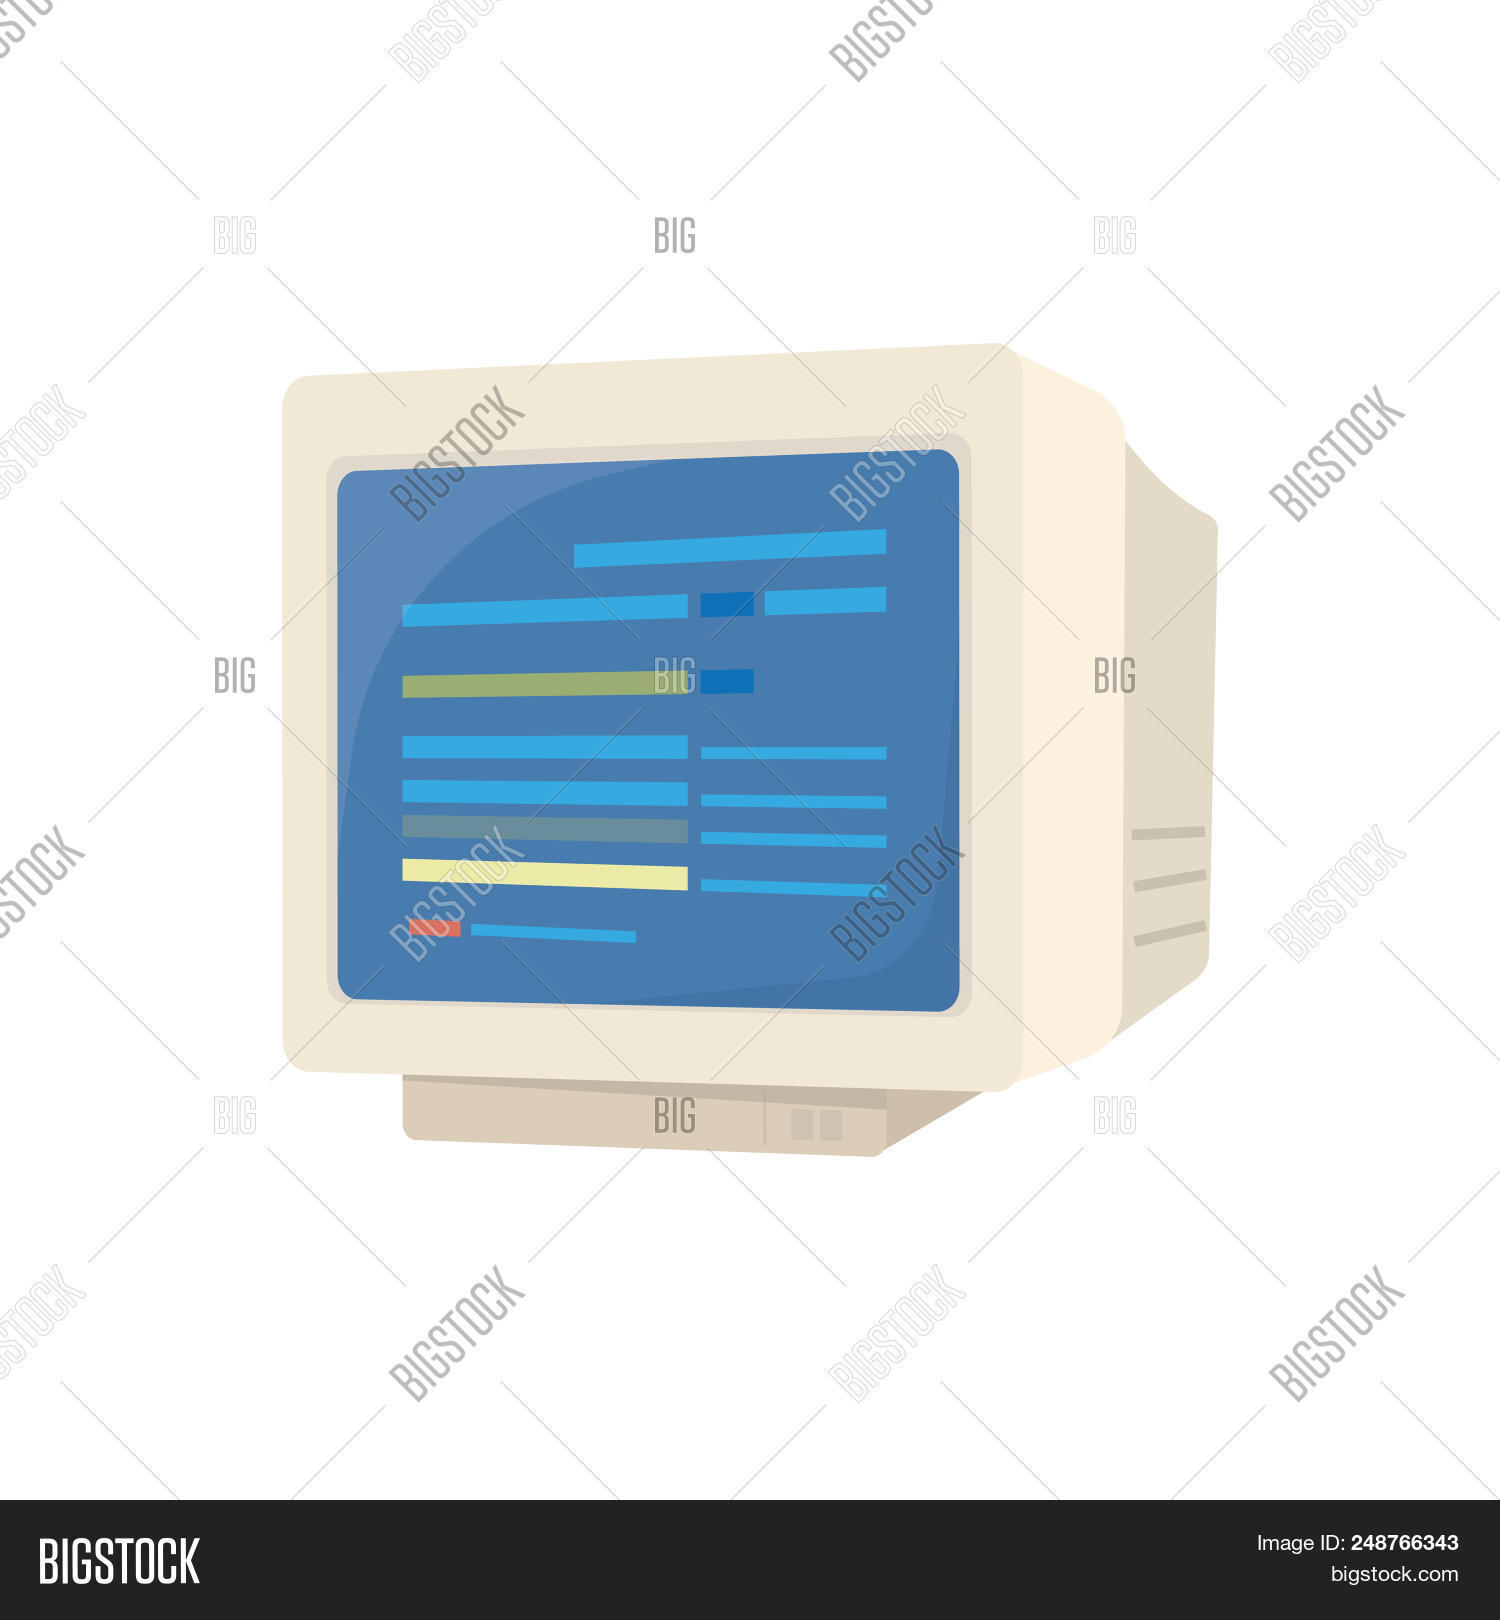 Old Computer Diagram 20 Wiring Images Diagrams Stock Image Of 39computer Circuit Board With Multiple Processors Making 248766343 Monitor Photo Free Trial Bigstock